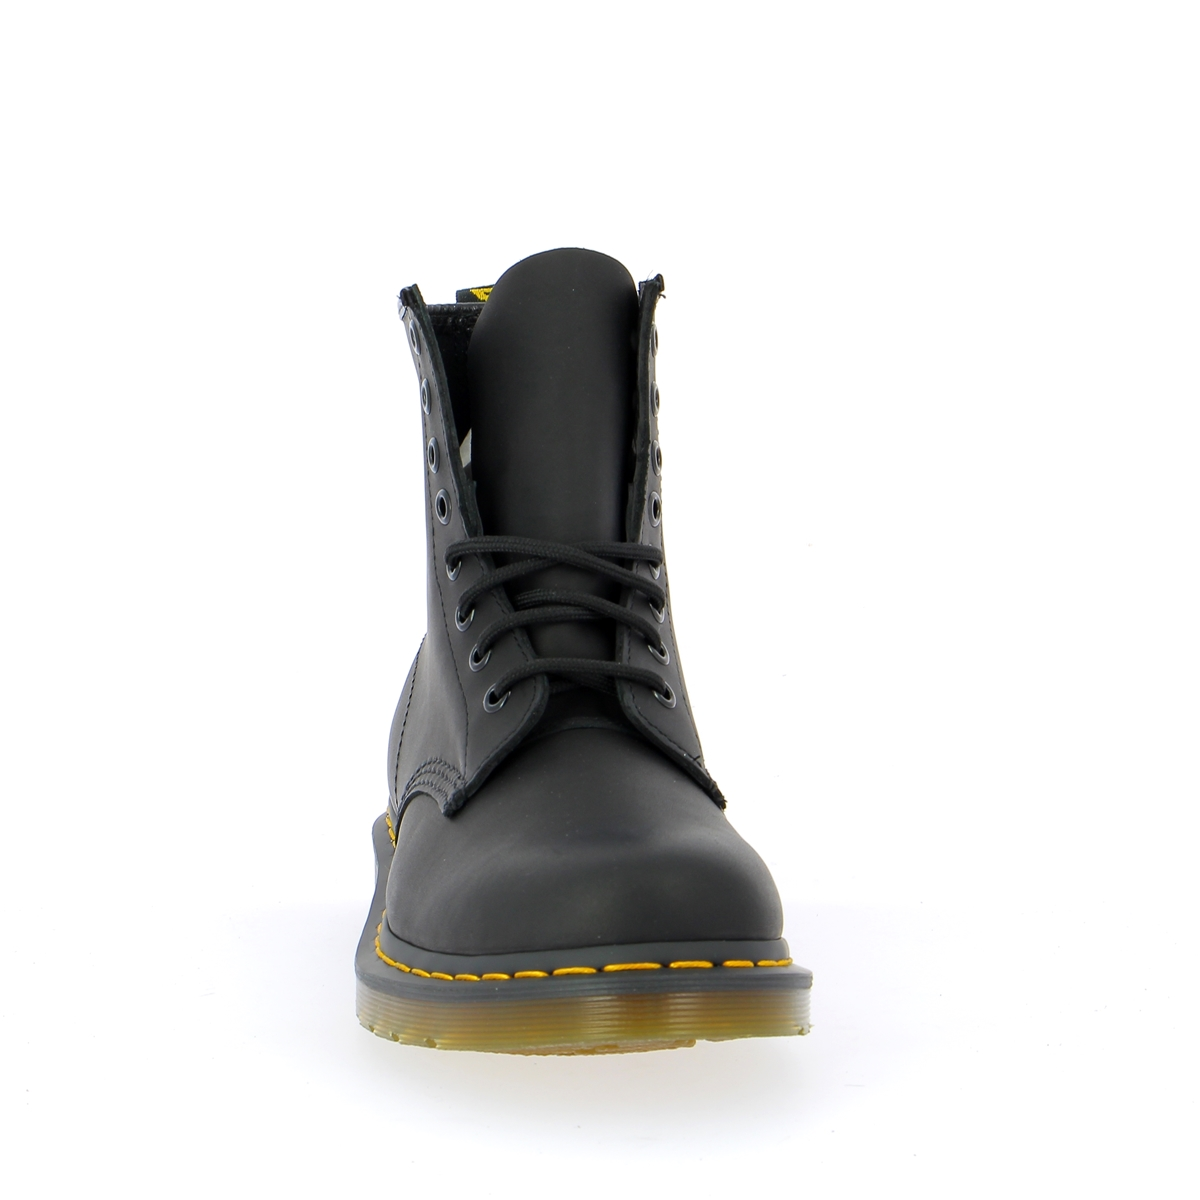 Dr. Martens Bottines noir